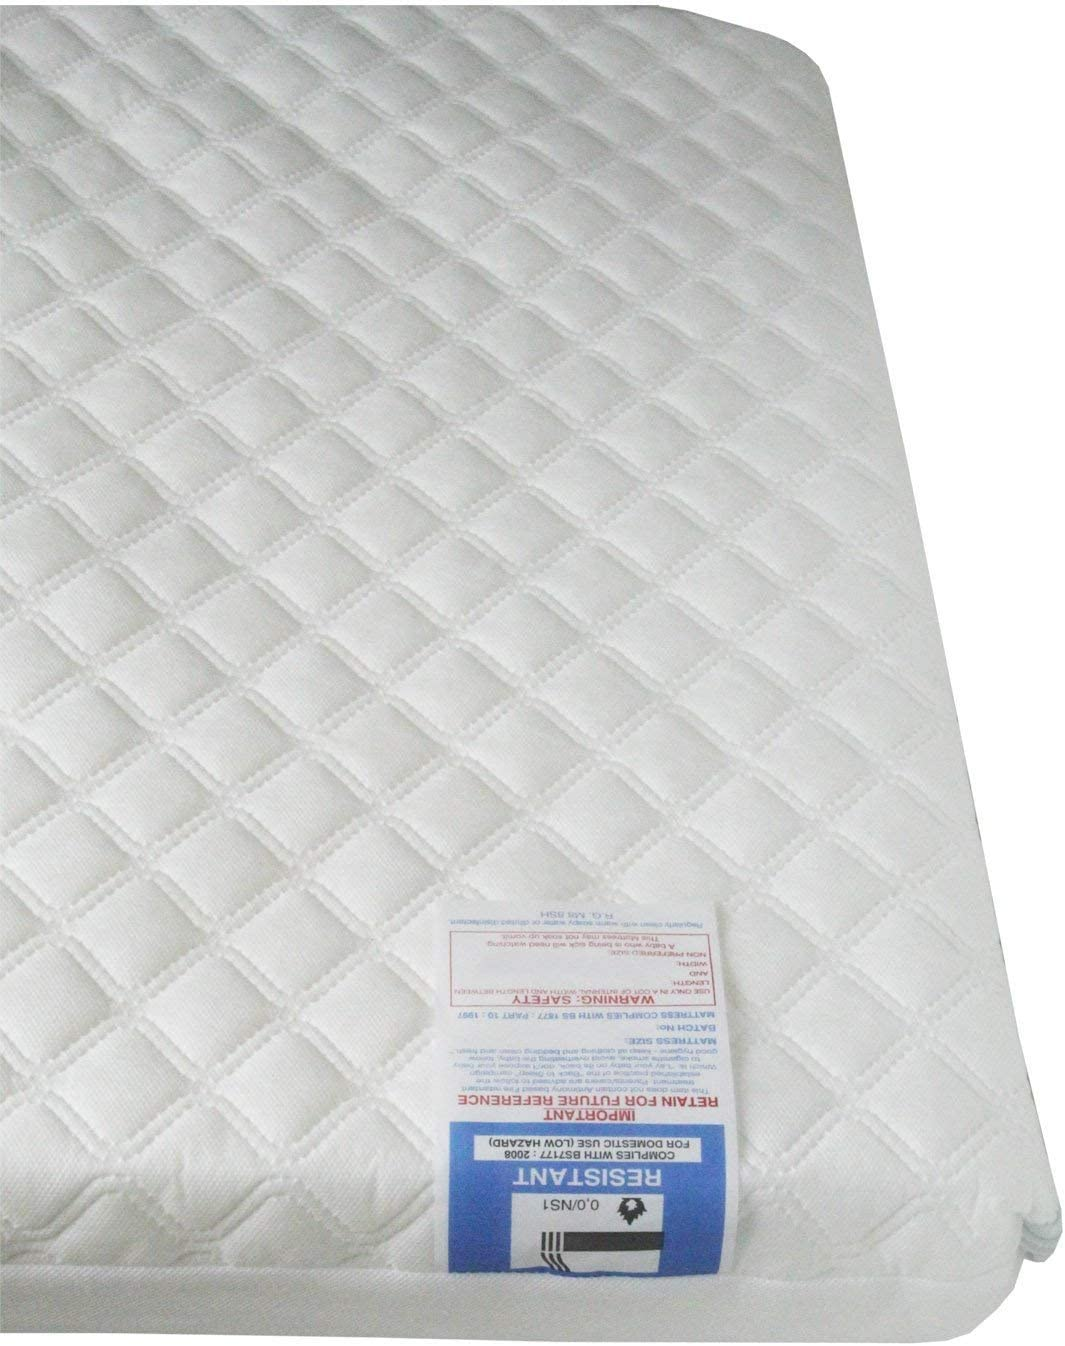 Baby Toddler Cot Bed Breathable QUILTED Foam Mattress 118 x 56 x 13 cm